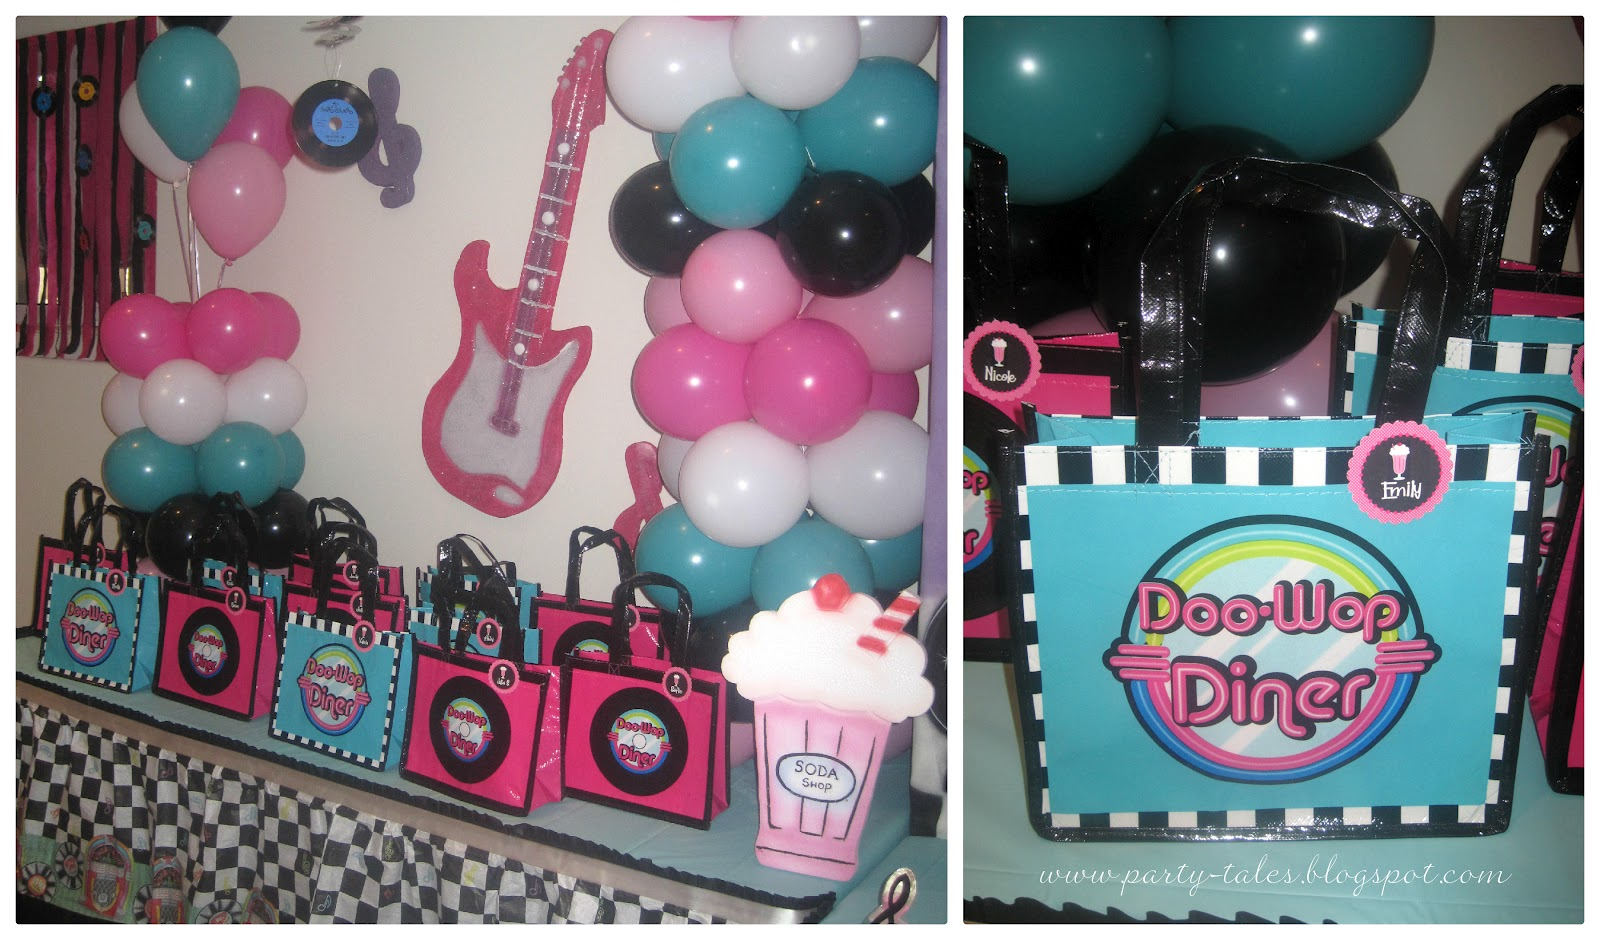 Party tales birthday party 50 39 s diner sock hop part 2 for R b party decorations